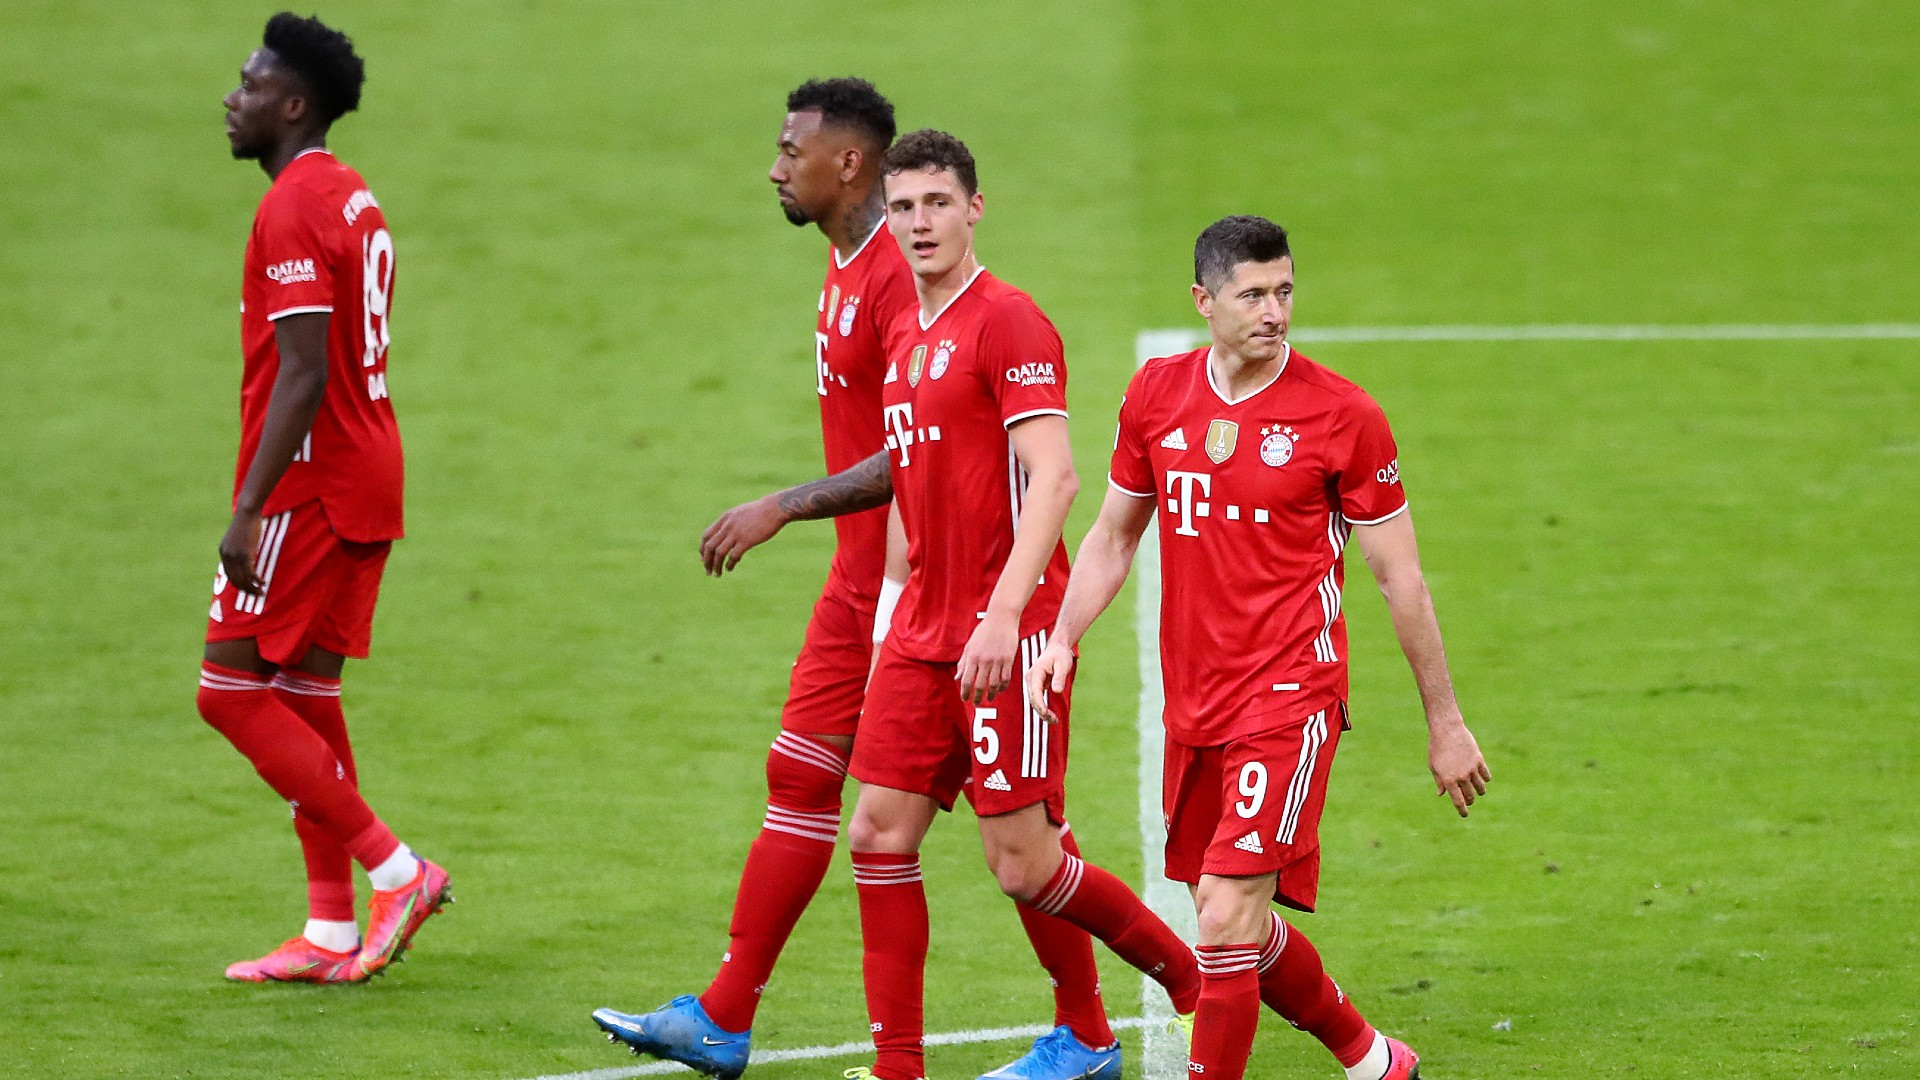 Salihamidzic Rules Out More Big Money Buys For Bayern Munich But Market Will Be Explored Goal Com